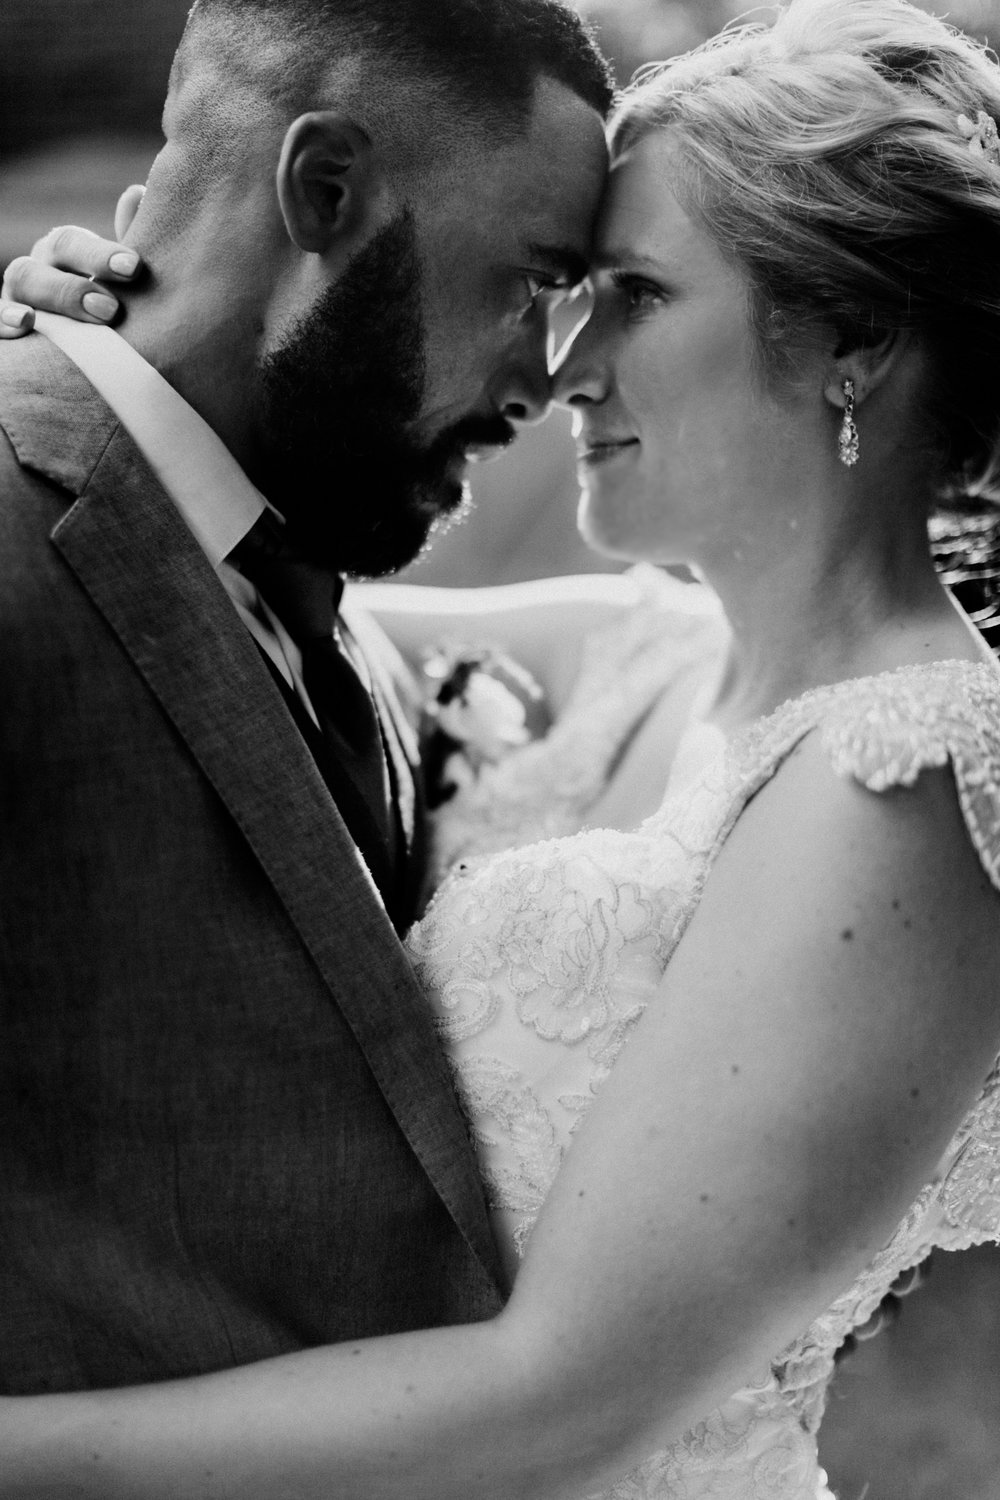 meagan abell photography pittsburgh creative wedding photographer emily and steven-1-2.jpg